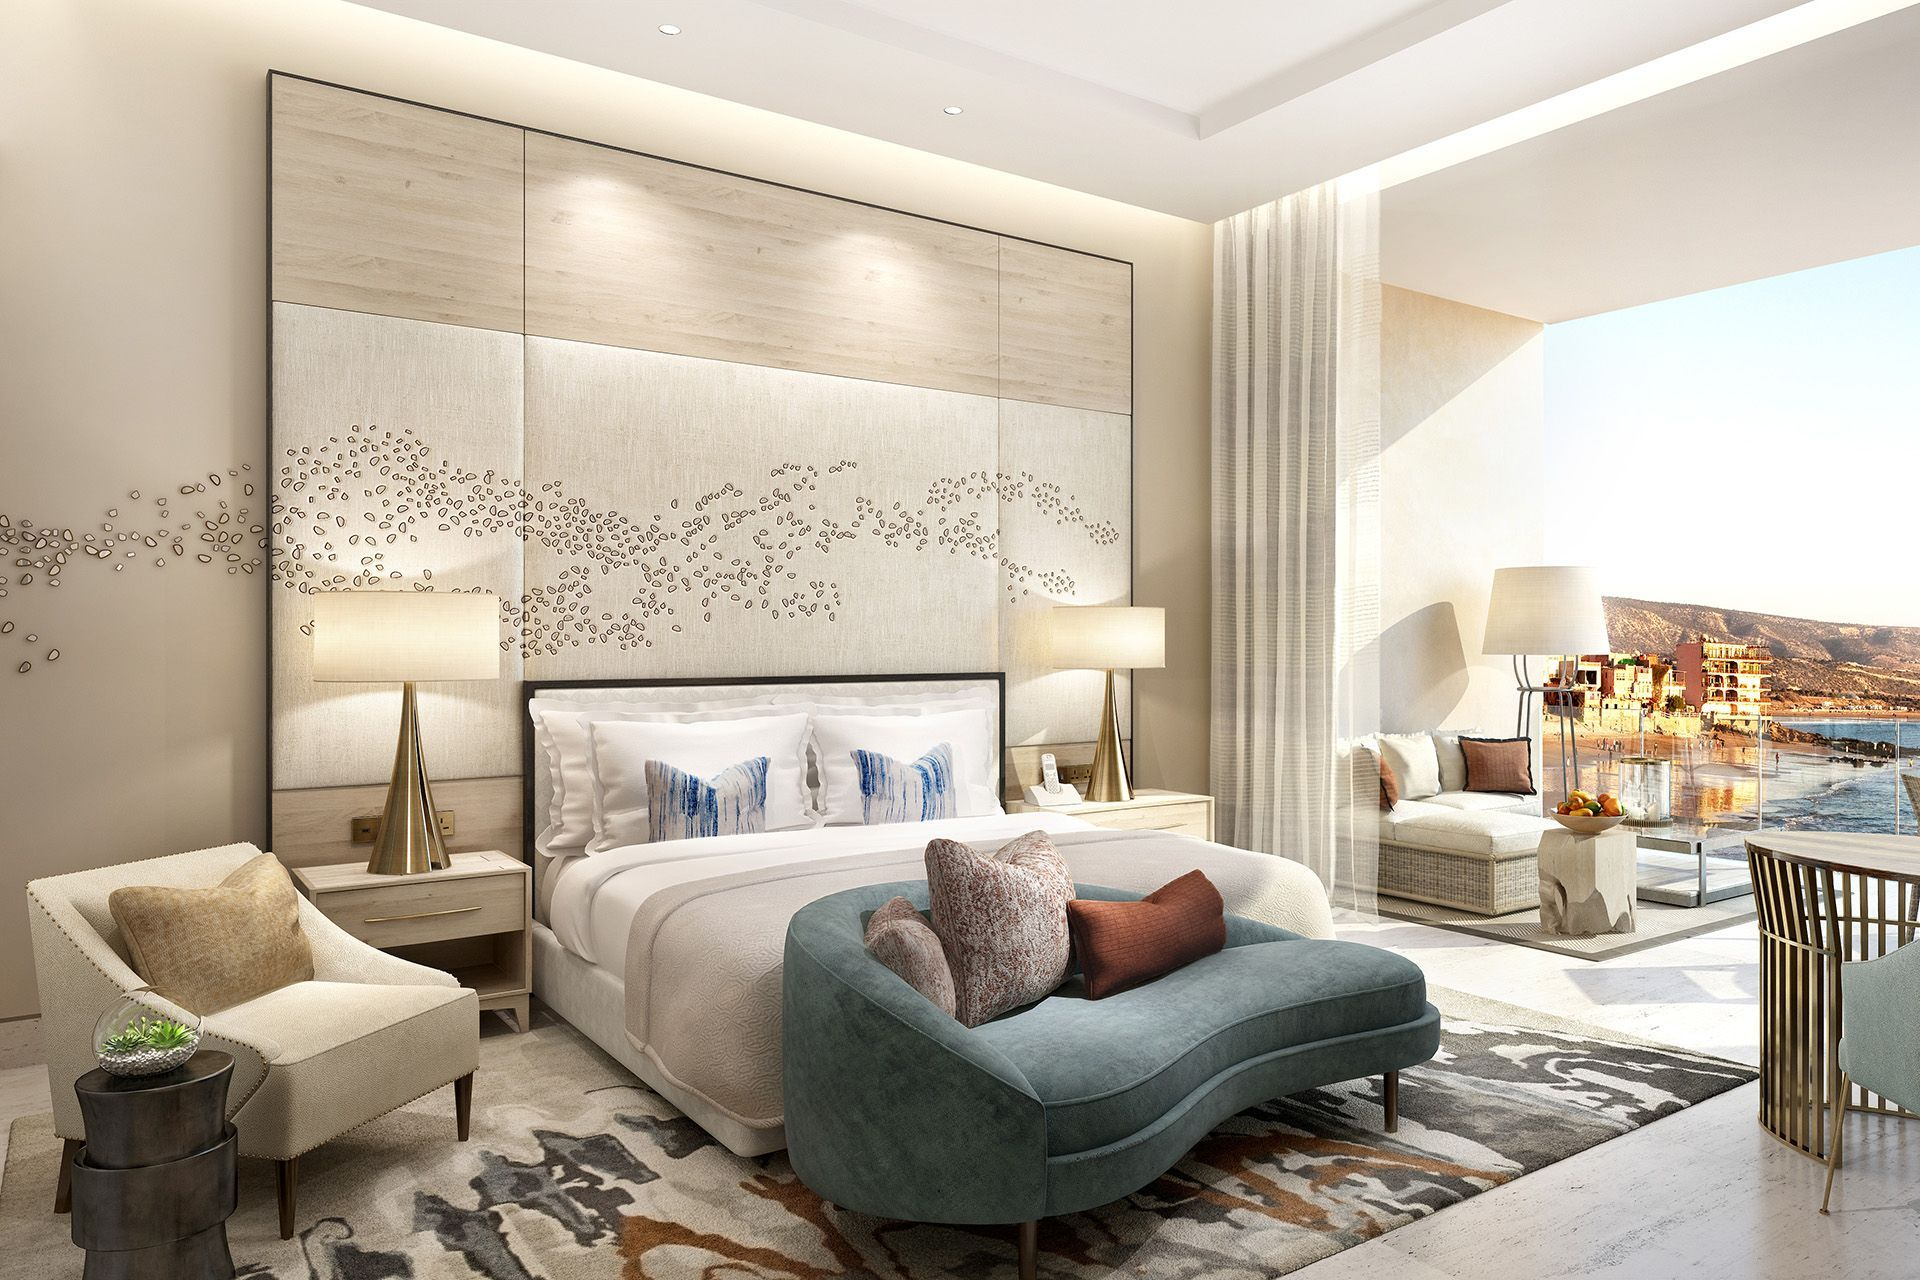 Four seasons taghazout interior designers wimberly for New bedroom designs pictures